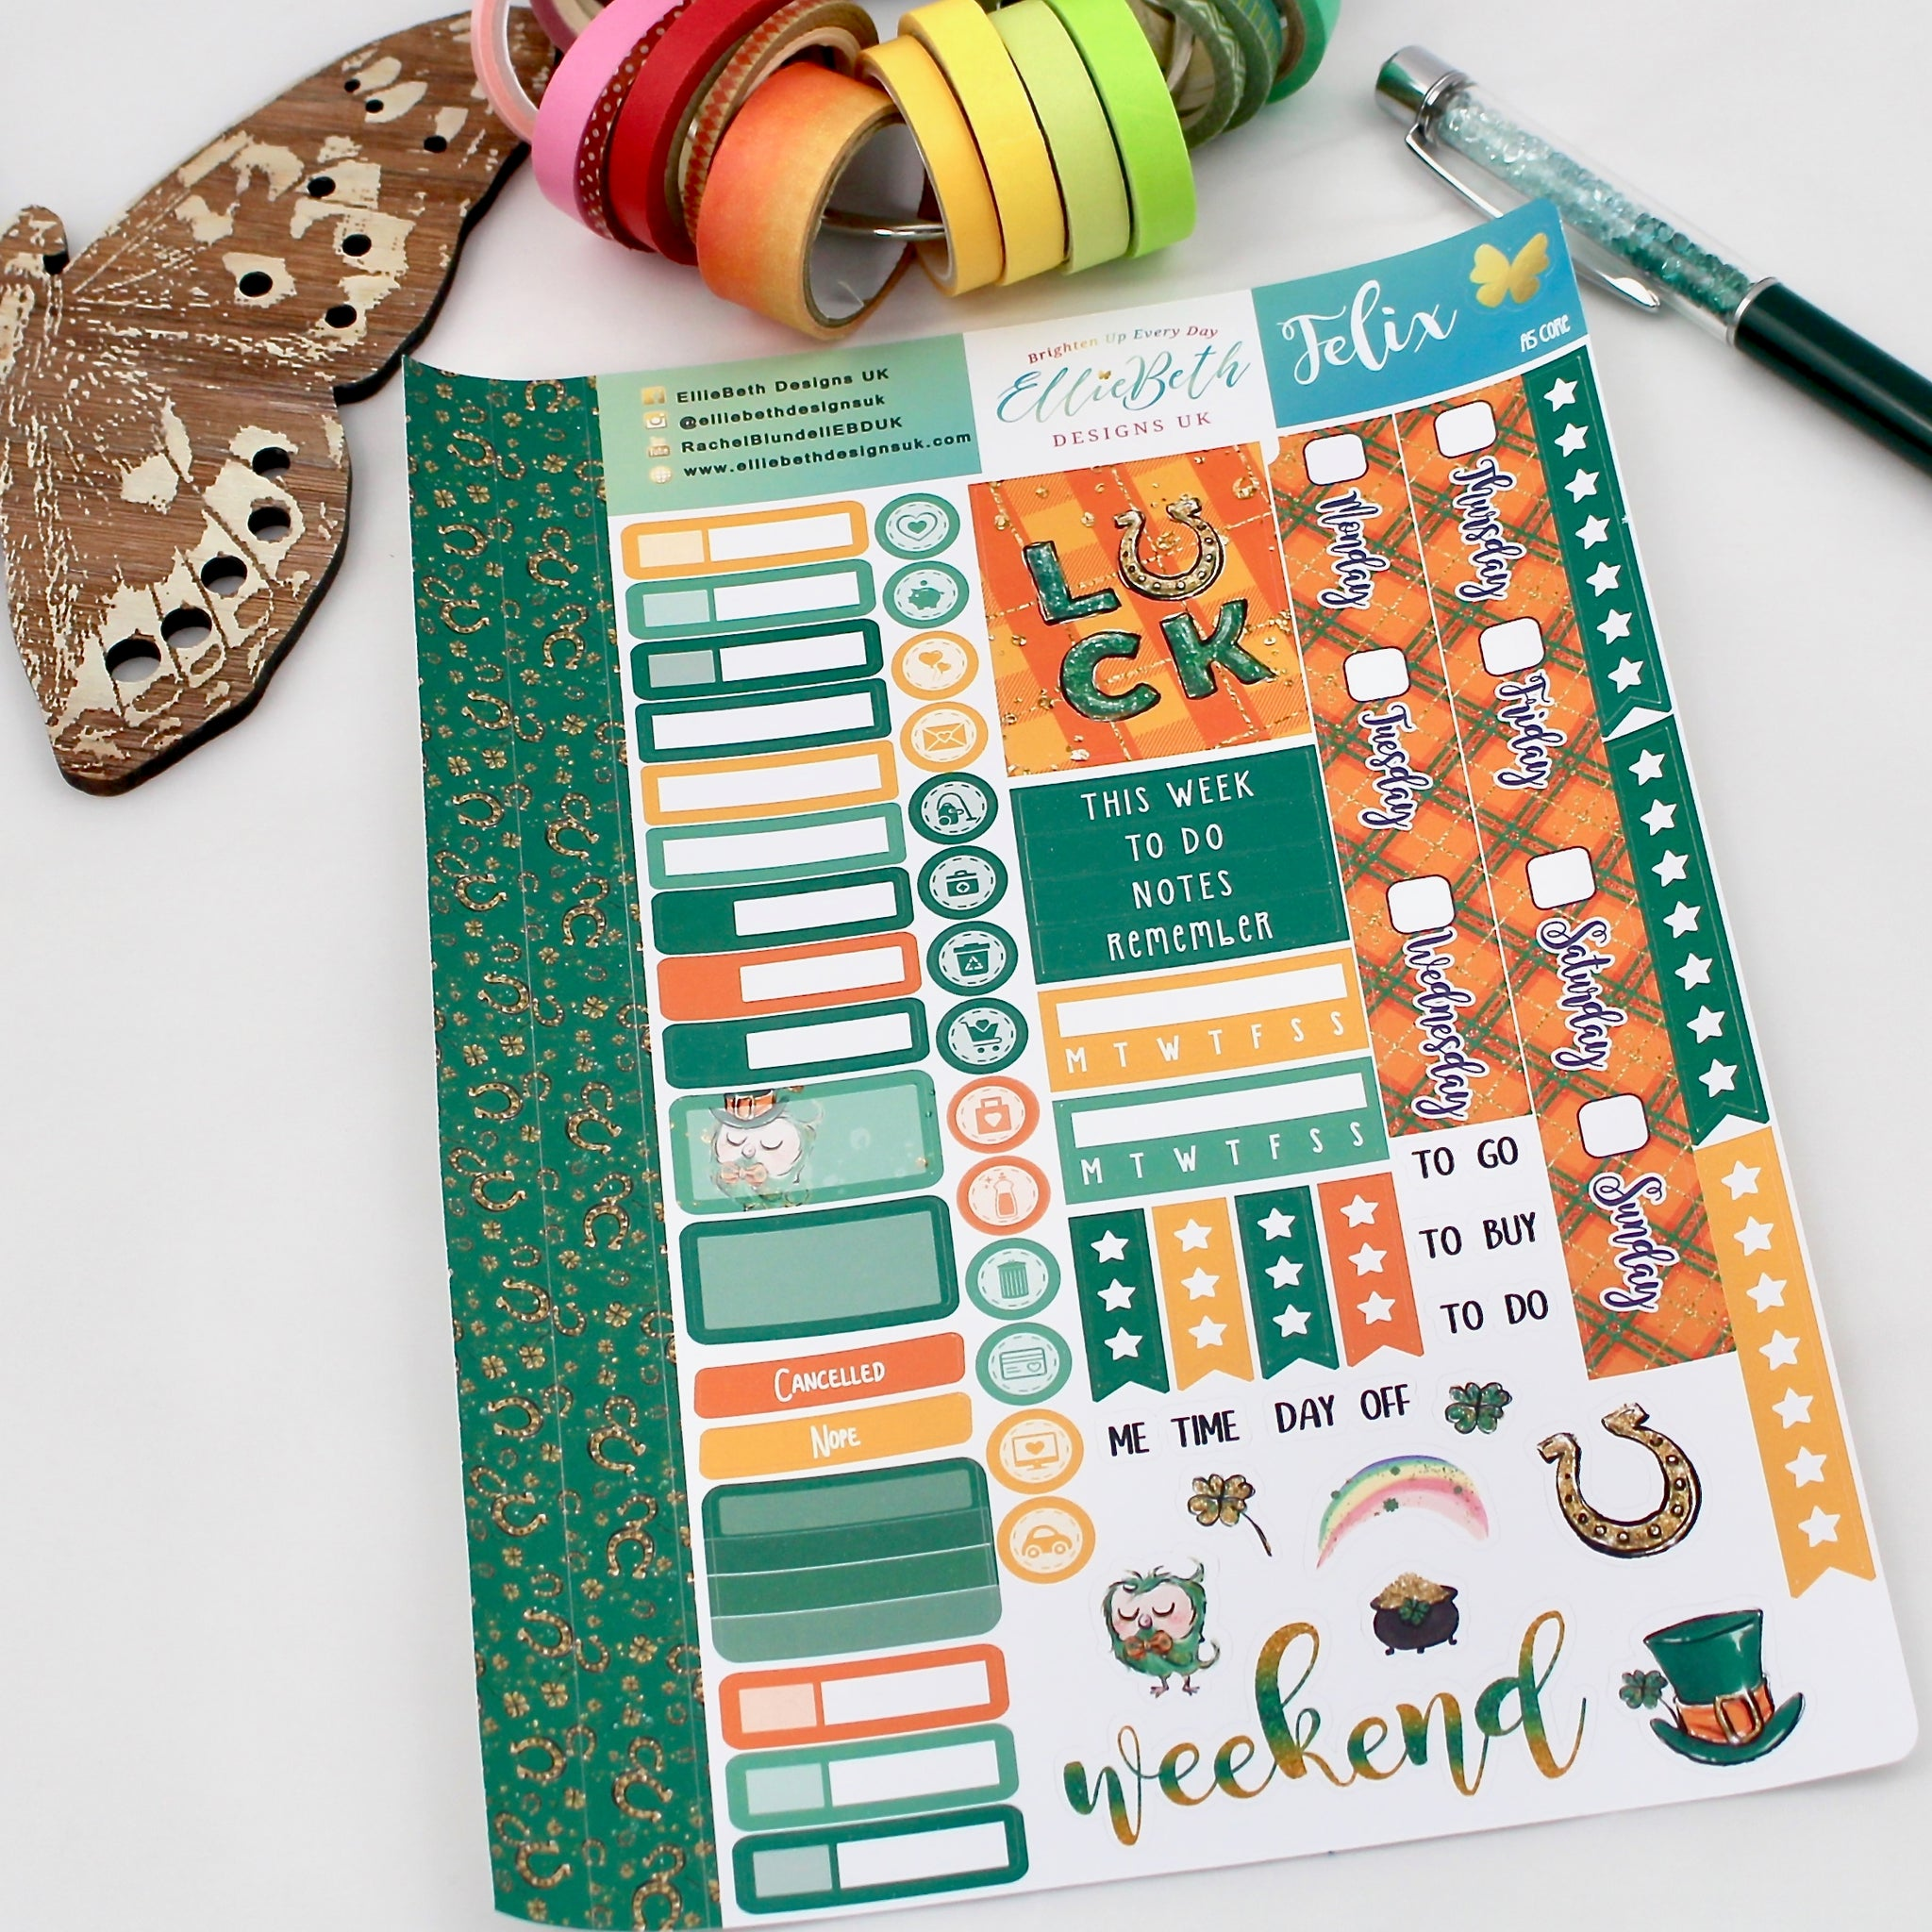 'Felix' - A5 Core Sheet - A5 binder ready planner stickers